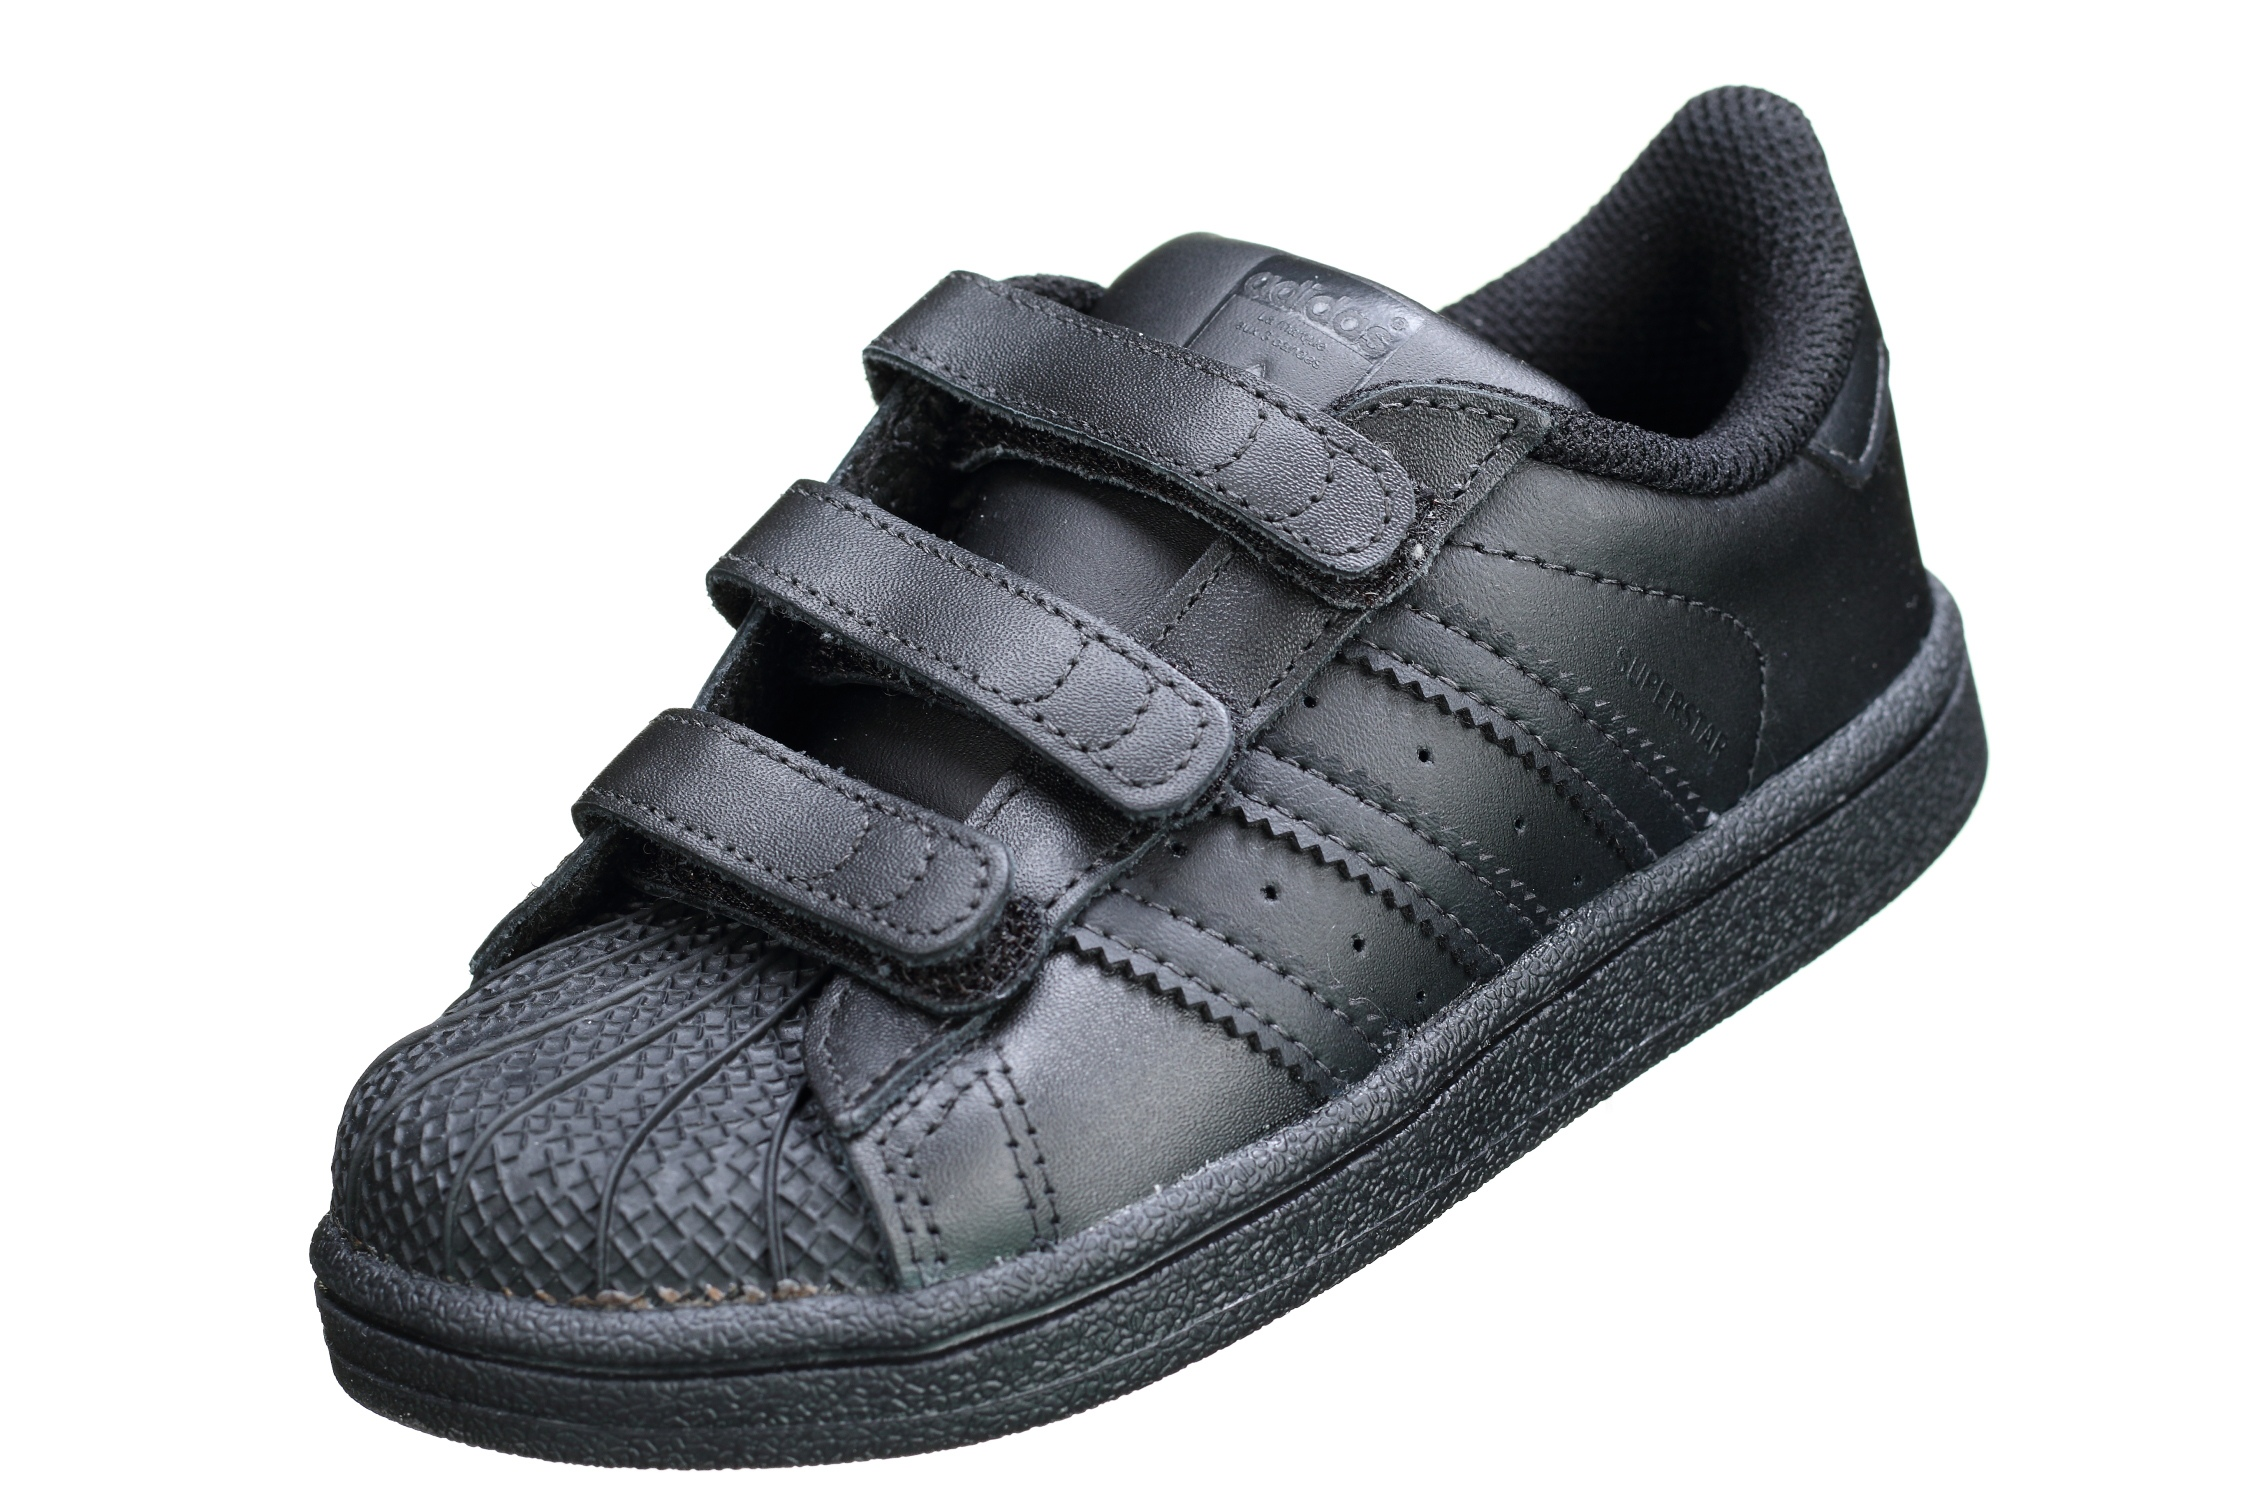 low priced d48e9 408b3 httpwww.leadermode.com151783adidas-superstar-